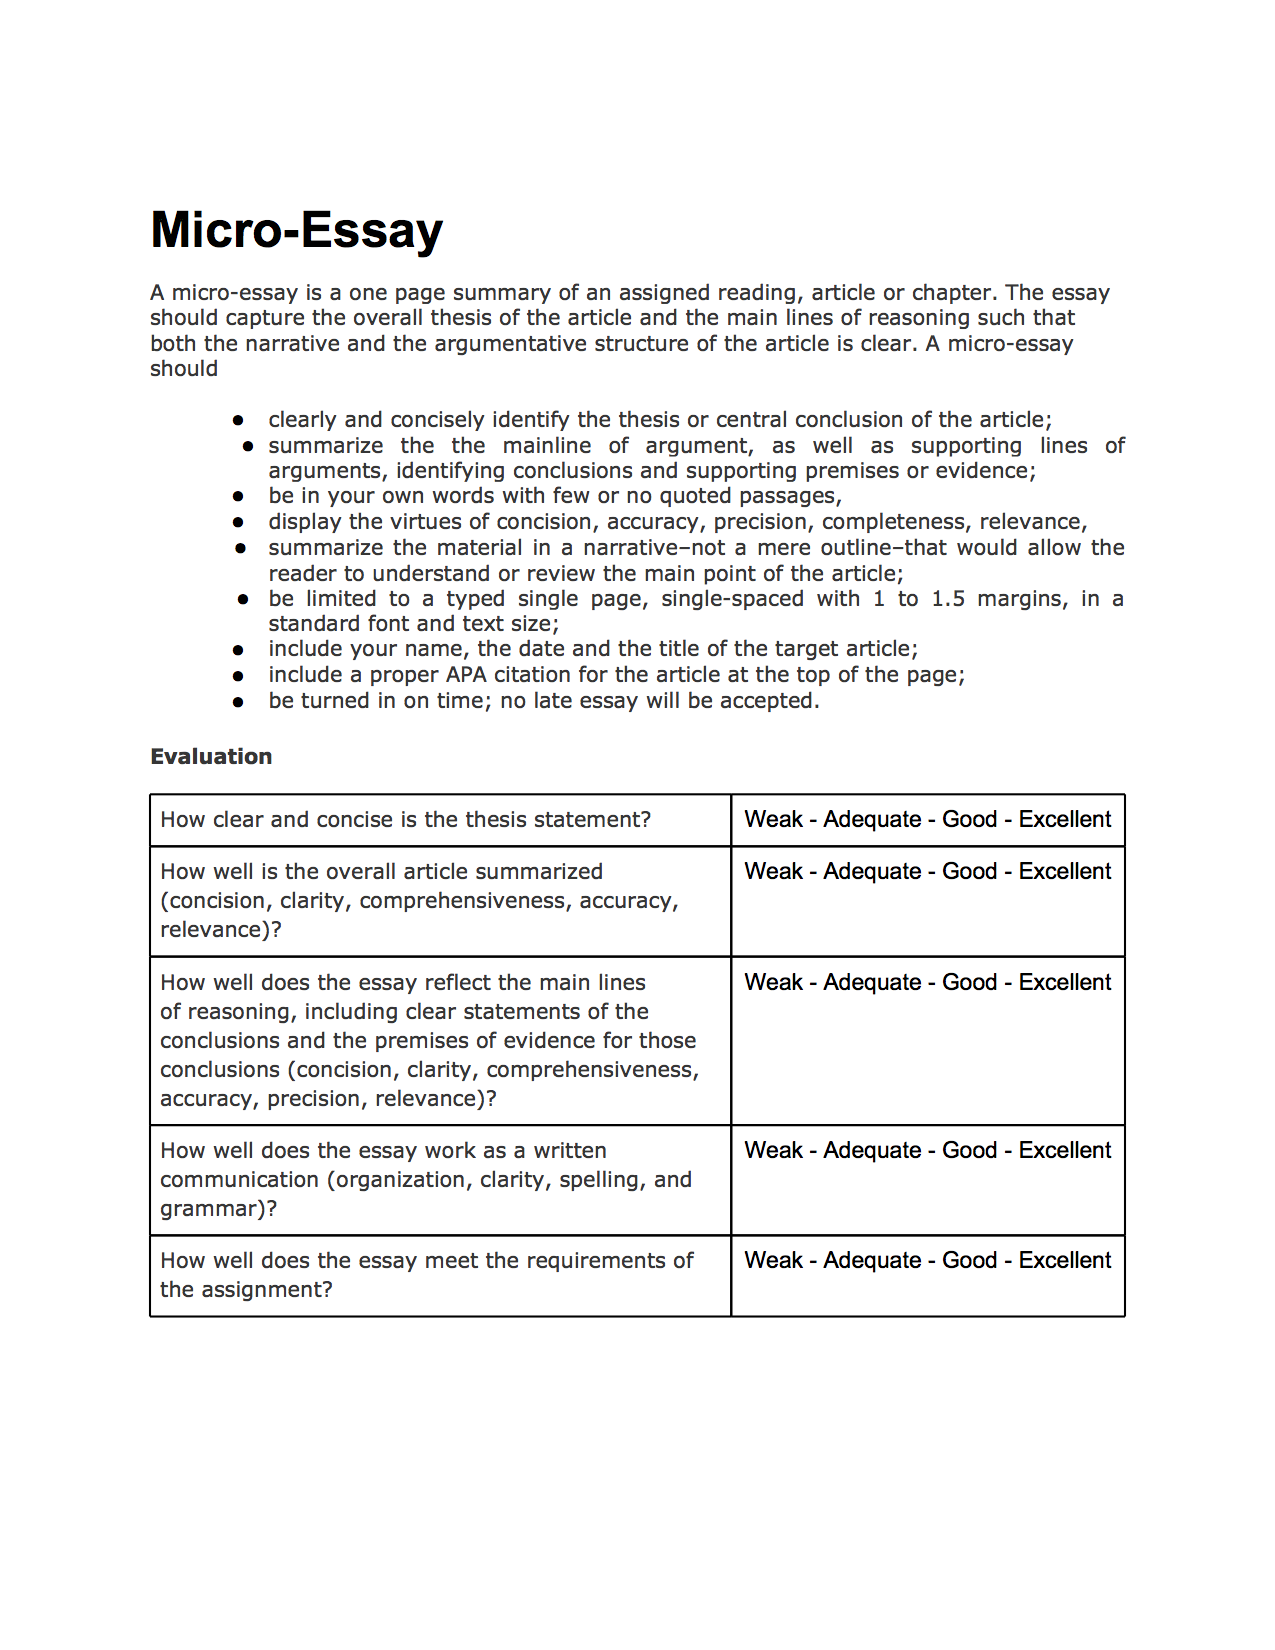 Good Creative Writing York University Phd Contoh Text Anality Expository Essays Need Help Writing A Song also Sample Essays High School Students  Essay With Thesis Statement